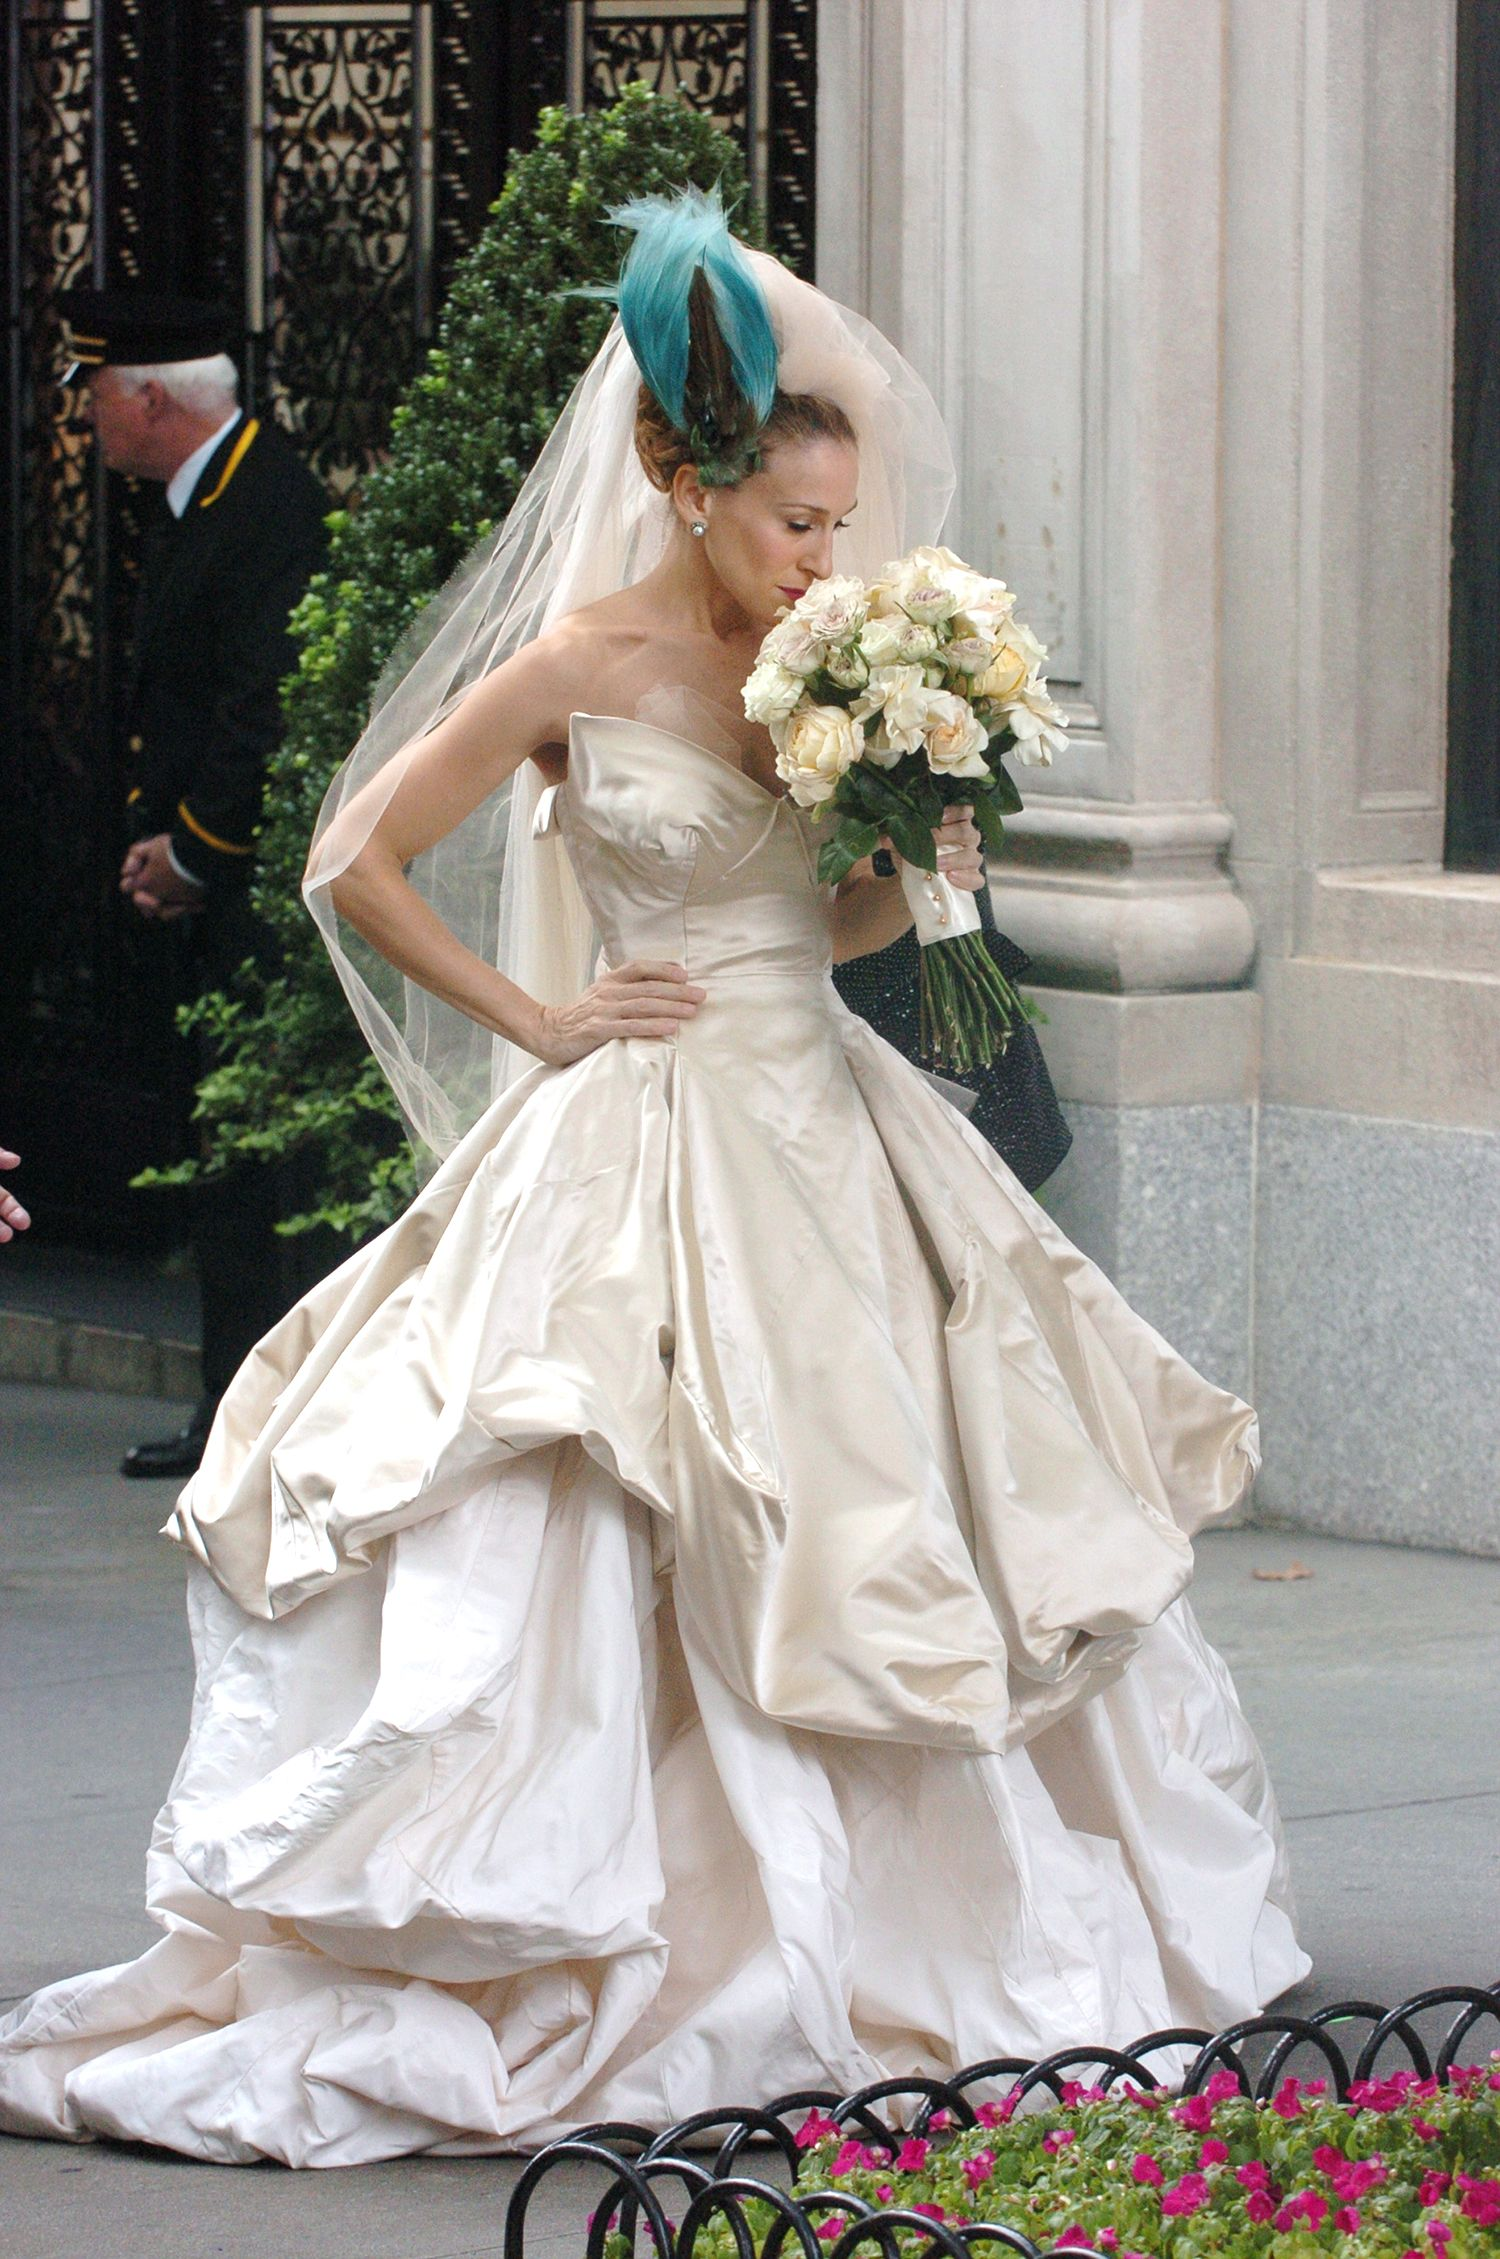 Wedding dress from sex and the city